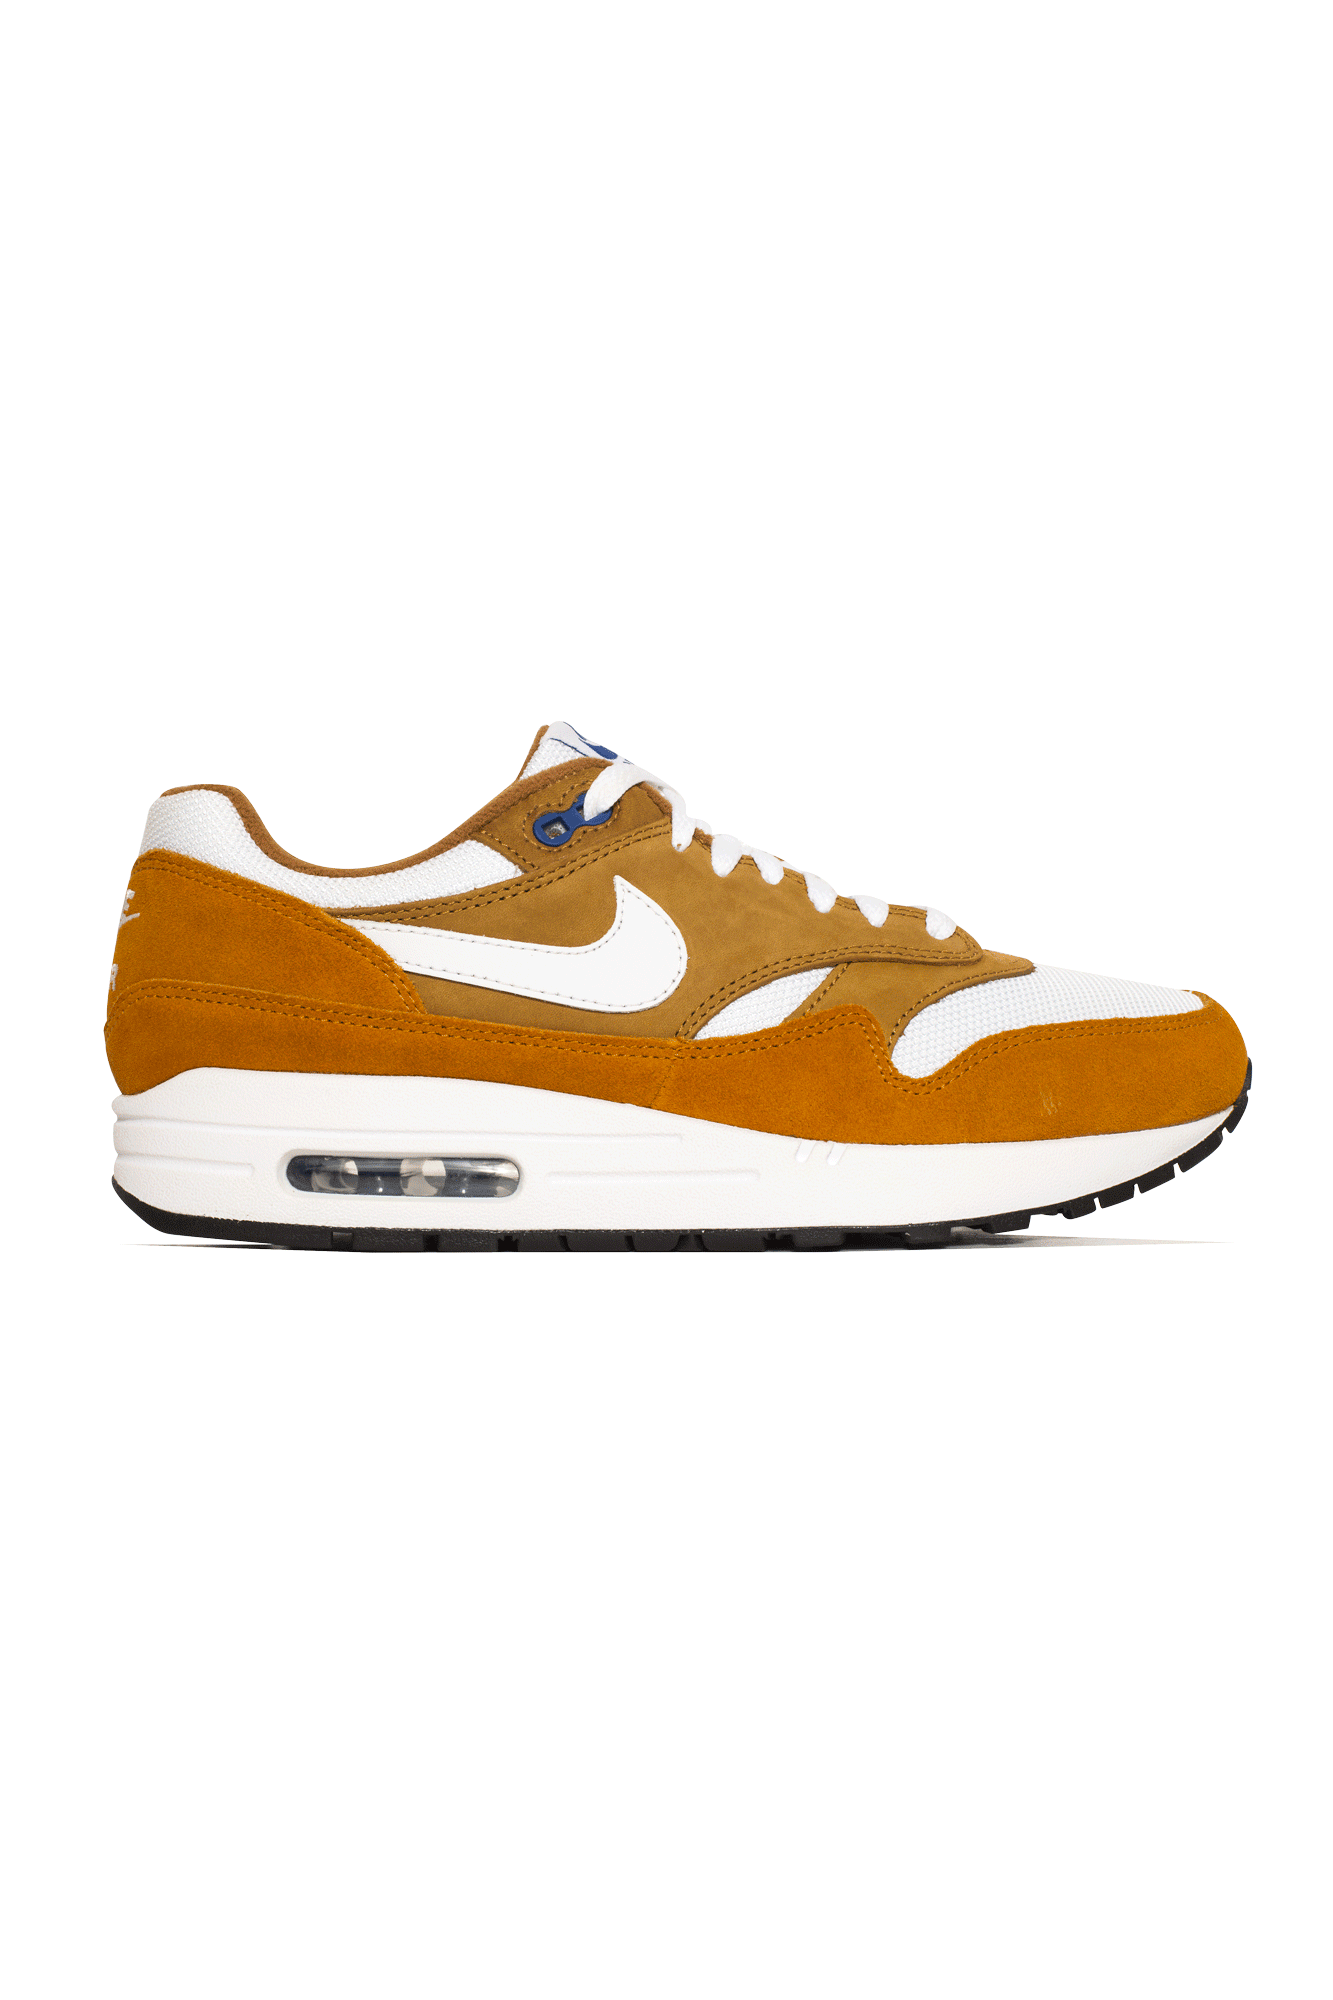 Air Max 1 Premium Retro Brown